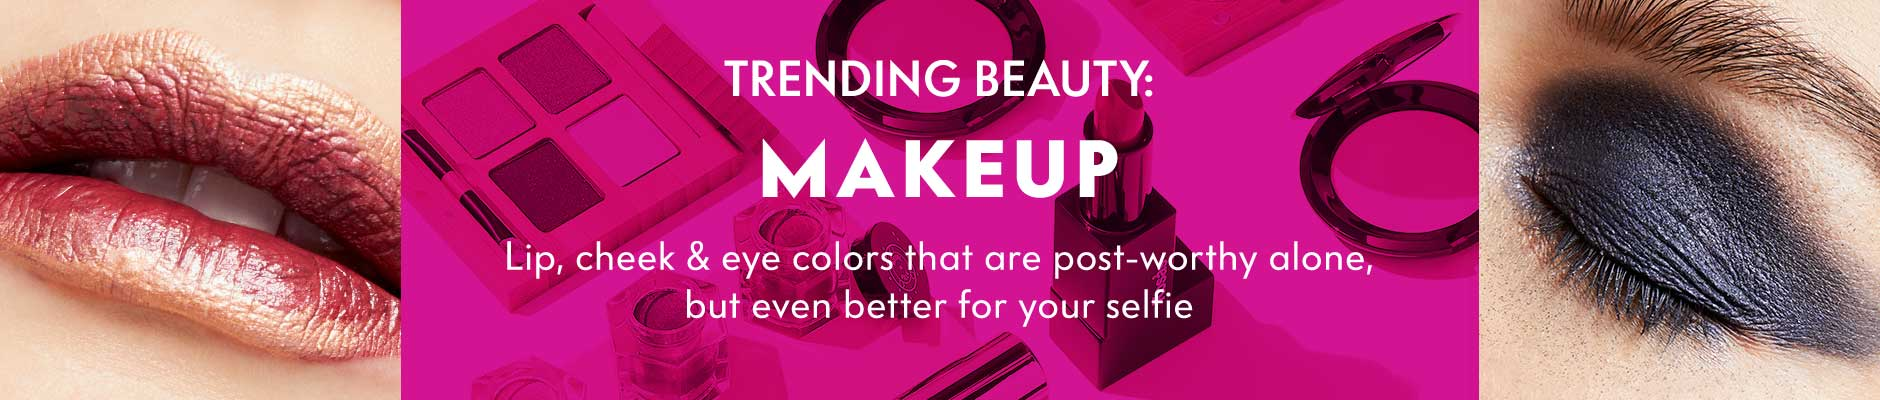 Trending Beauty: Makeup - New. Now. Next. Lip, cheek & eye colors that are post-worthy alone, but even better for your selfie